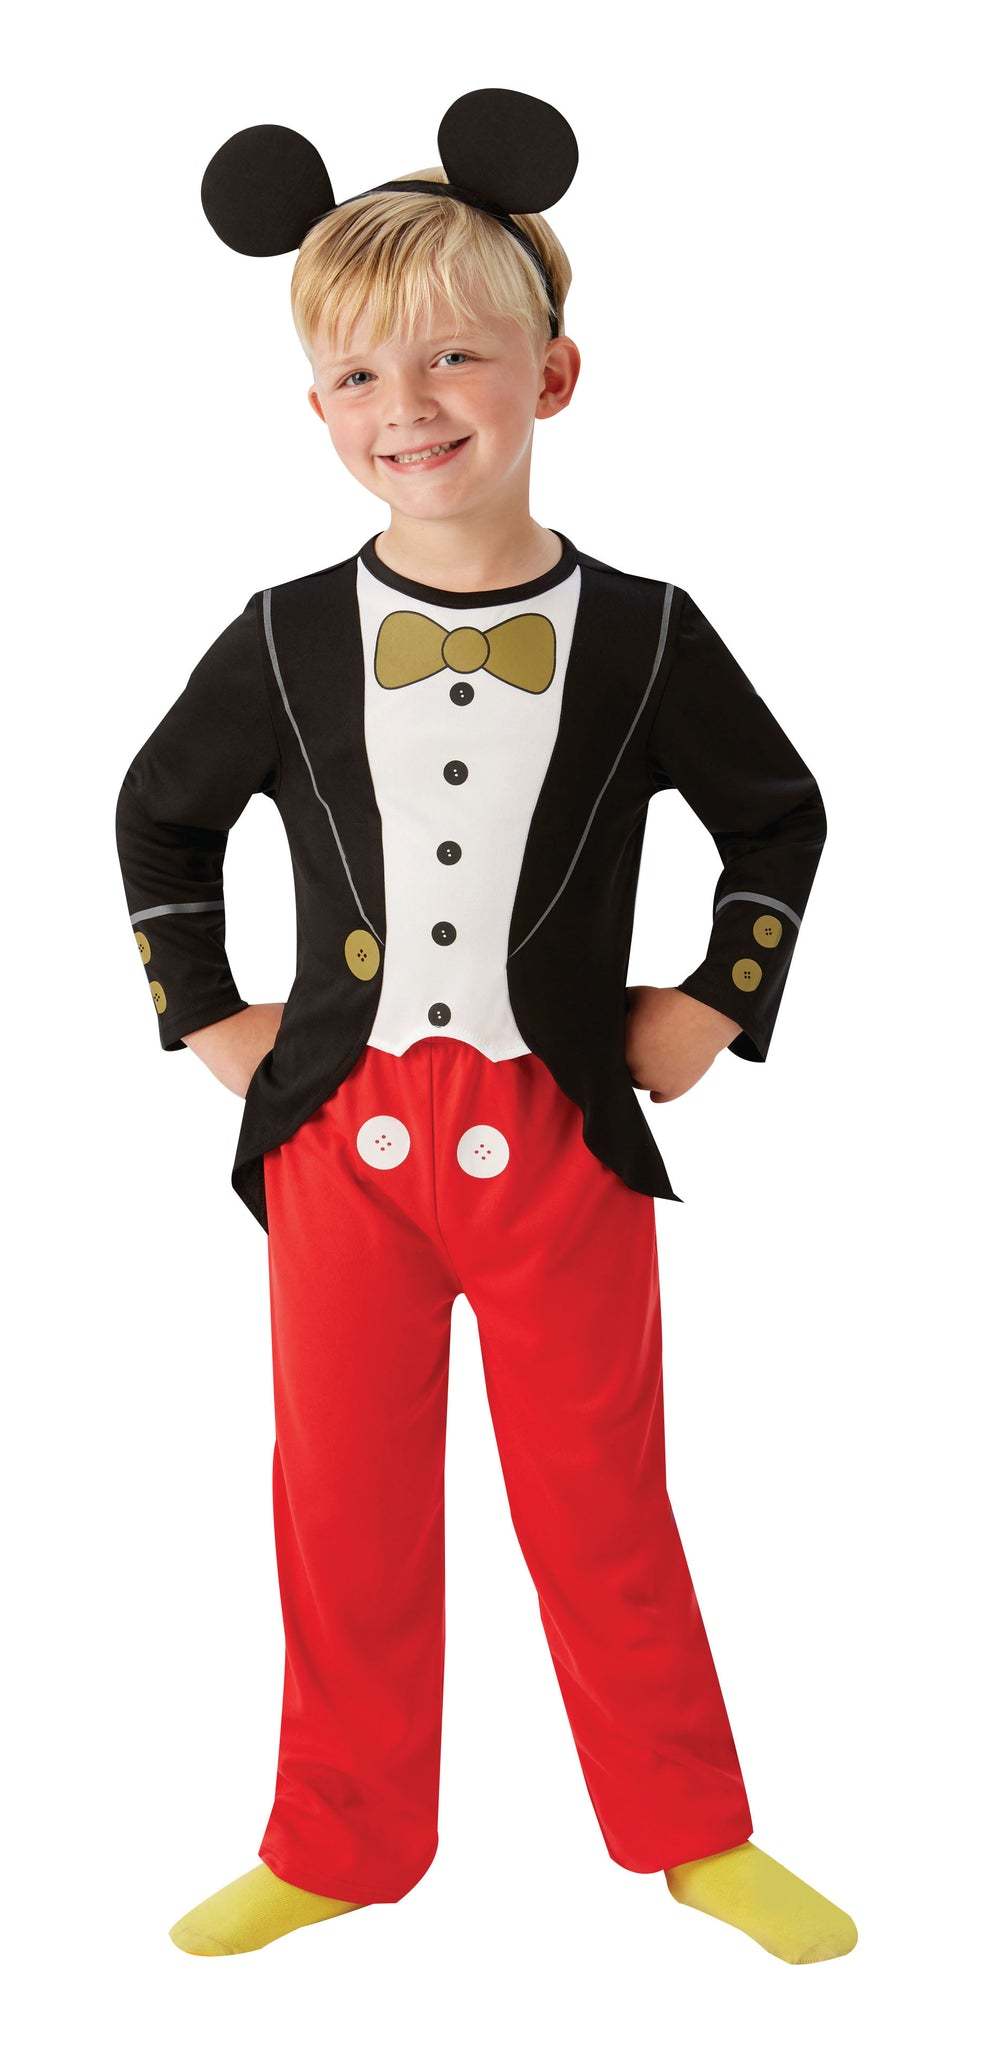 MICKEY MOUSE TUXEDO COSTUME, CHILD - SIZE TODDLER